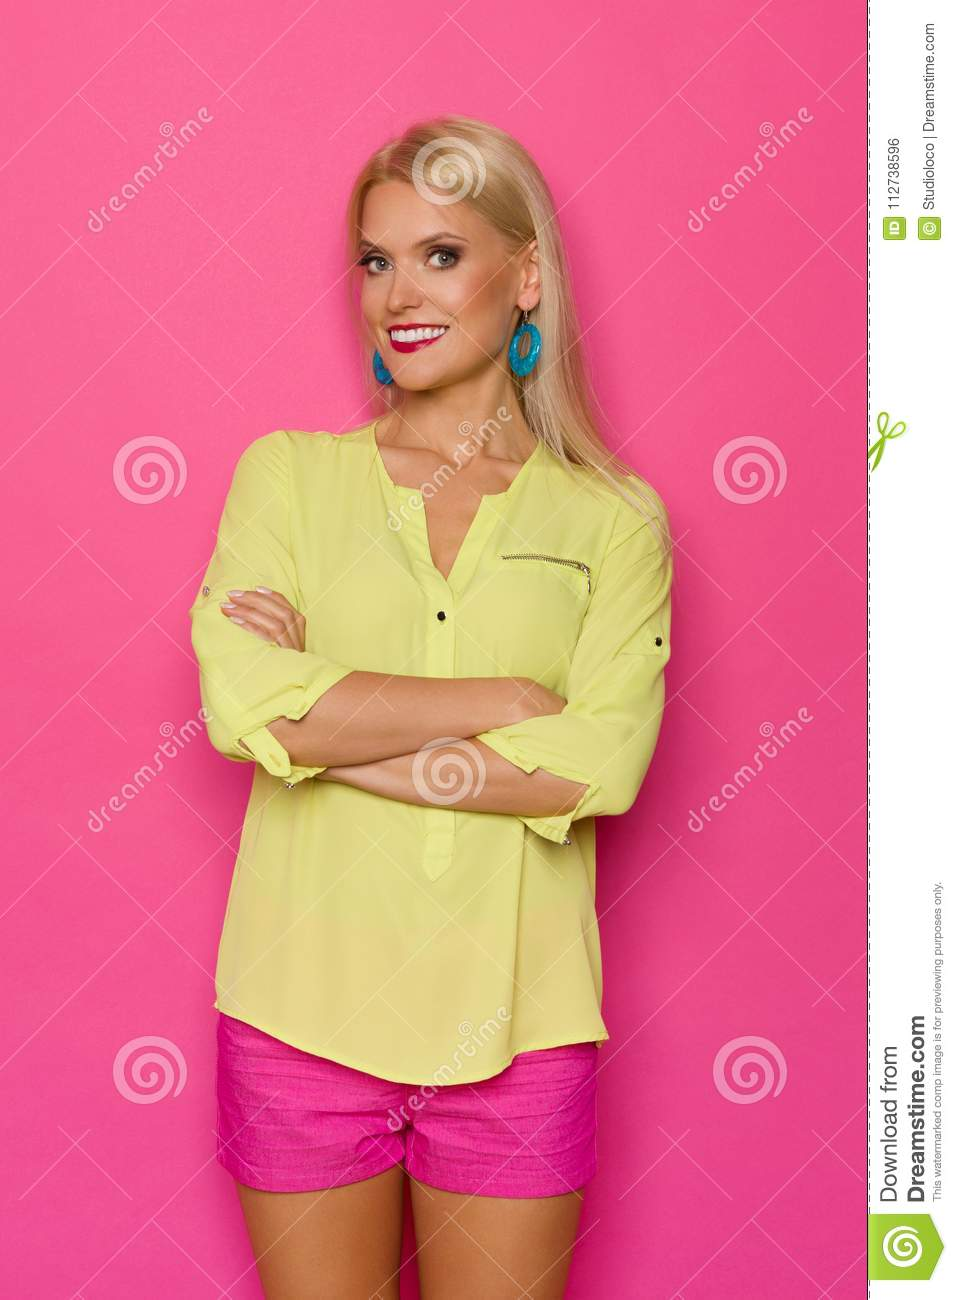 eea34b84aca44 Smiling beautiful blond woman in yellow shirt and pink shorts is holding  arms crossed and looking at camera. Three quarter length studio shot on pink  ...